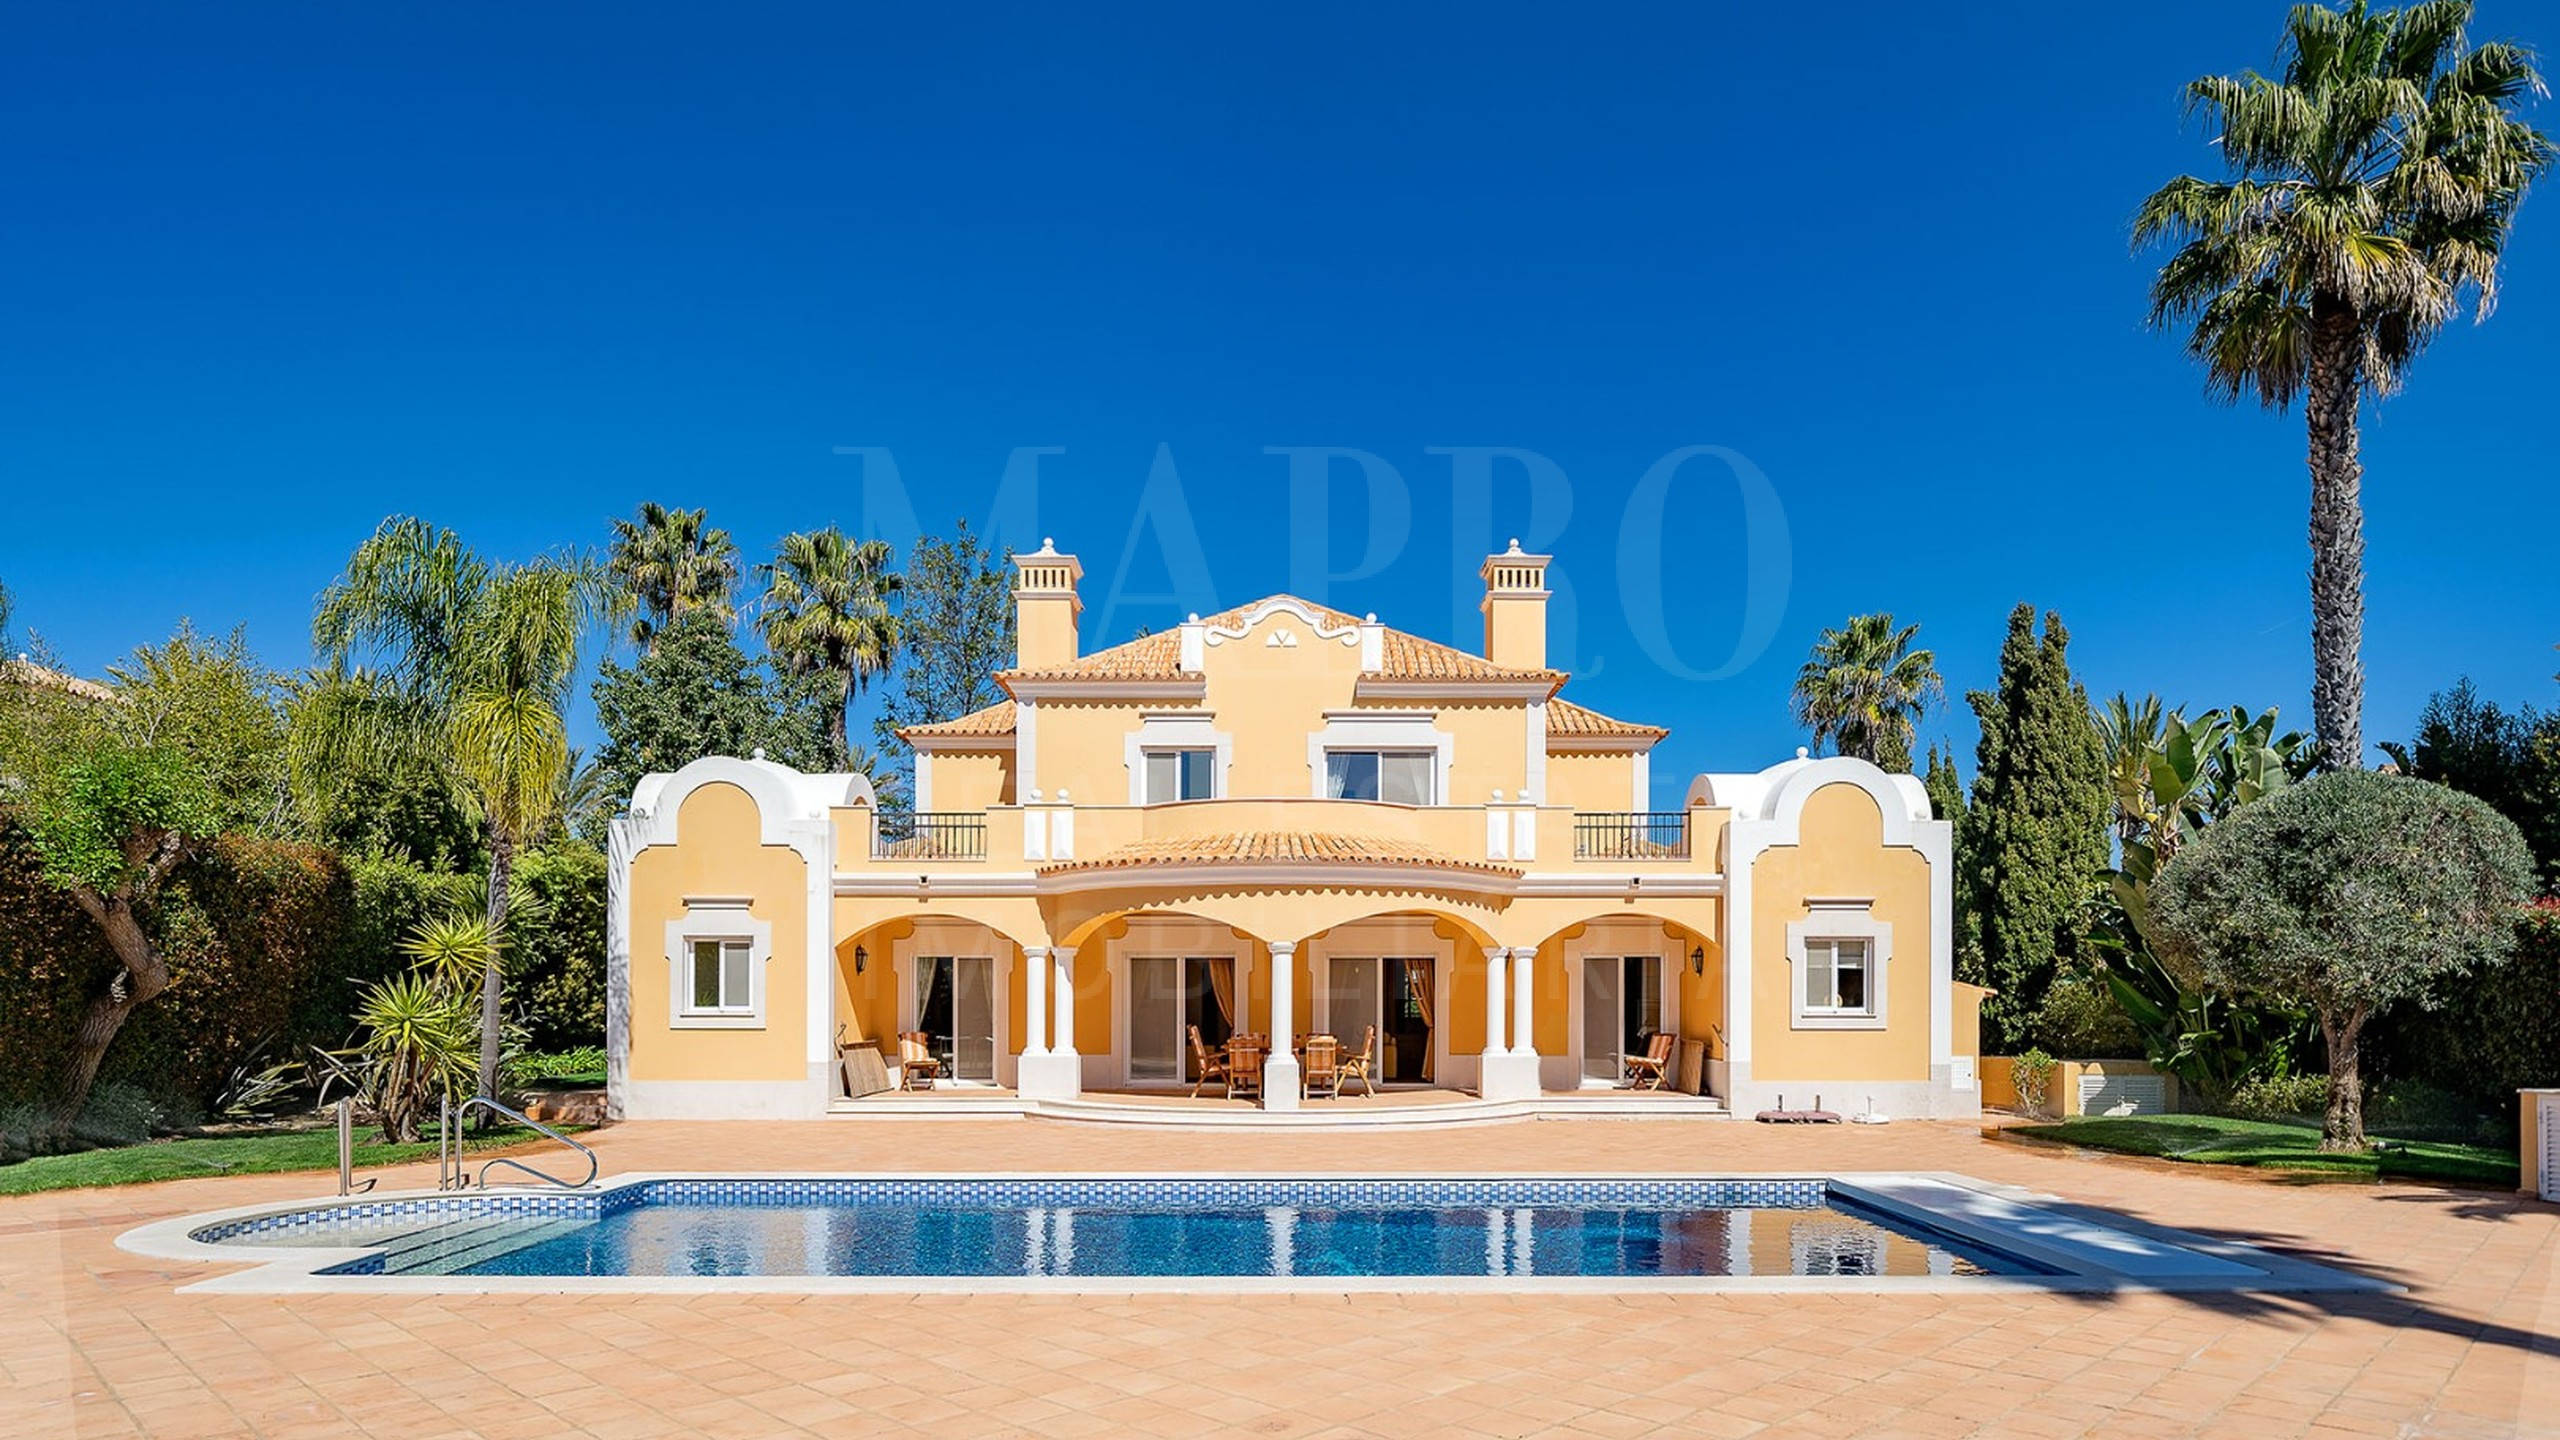 Spacious 4 bedroom villa situated within the Quinta do Mar development